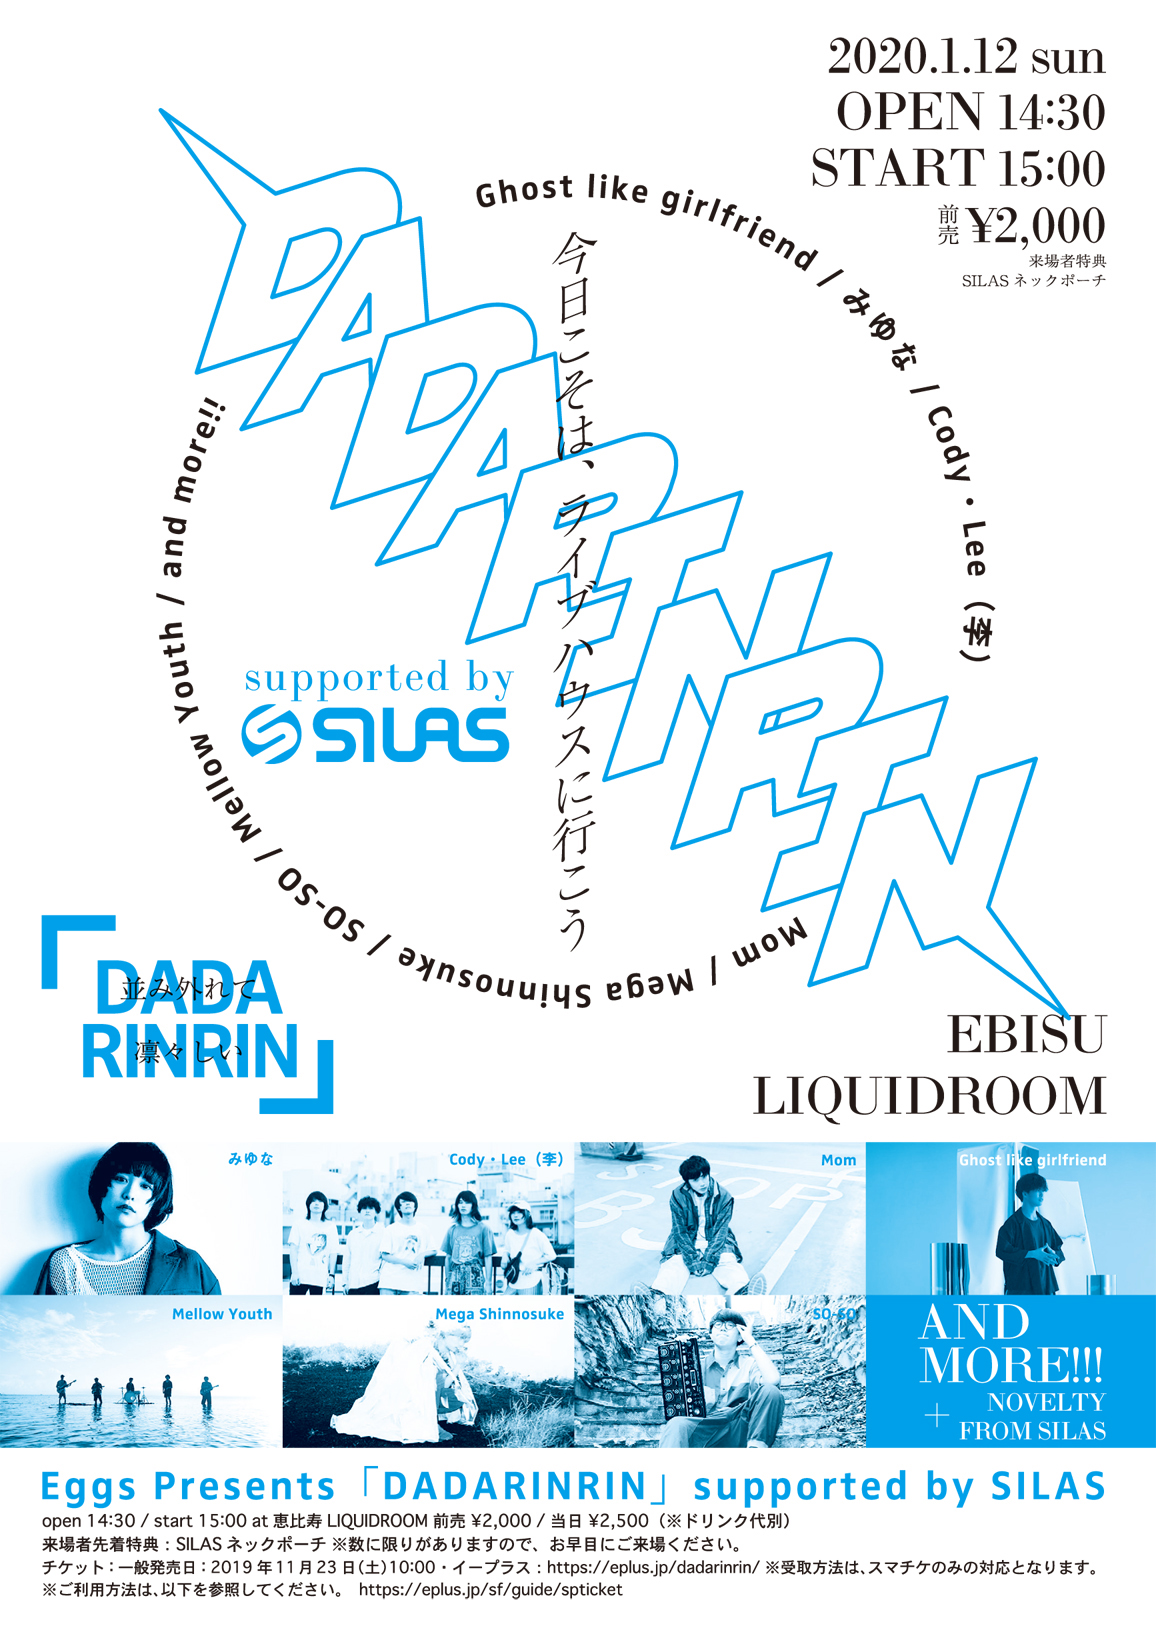 Eggs Presents「DADARINRIN」supported by SILAS